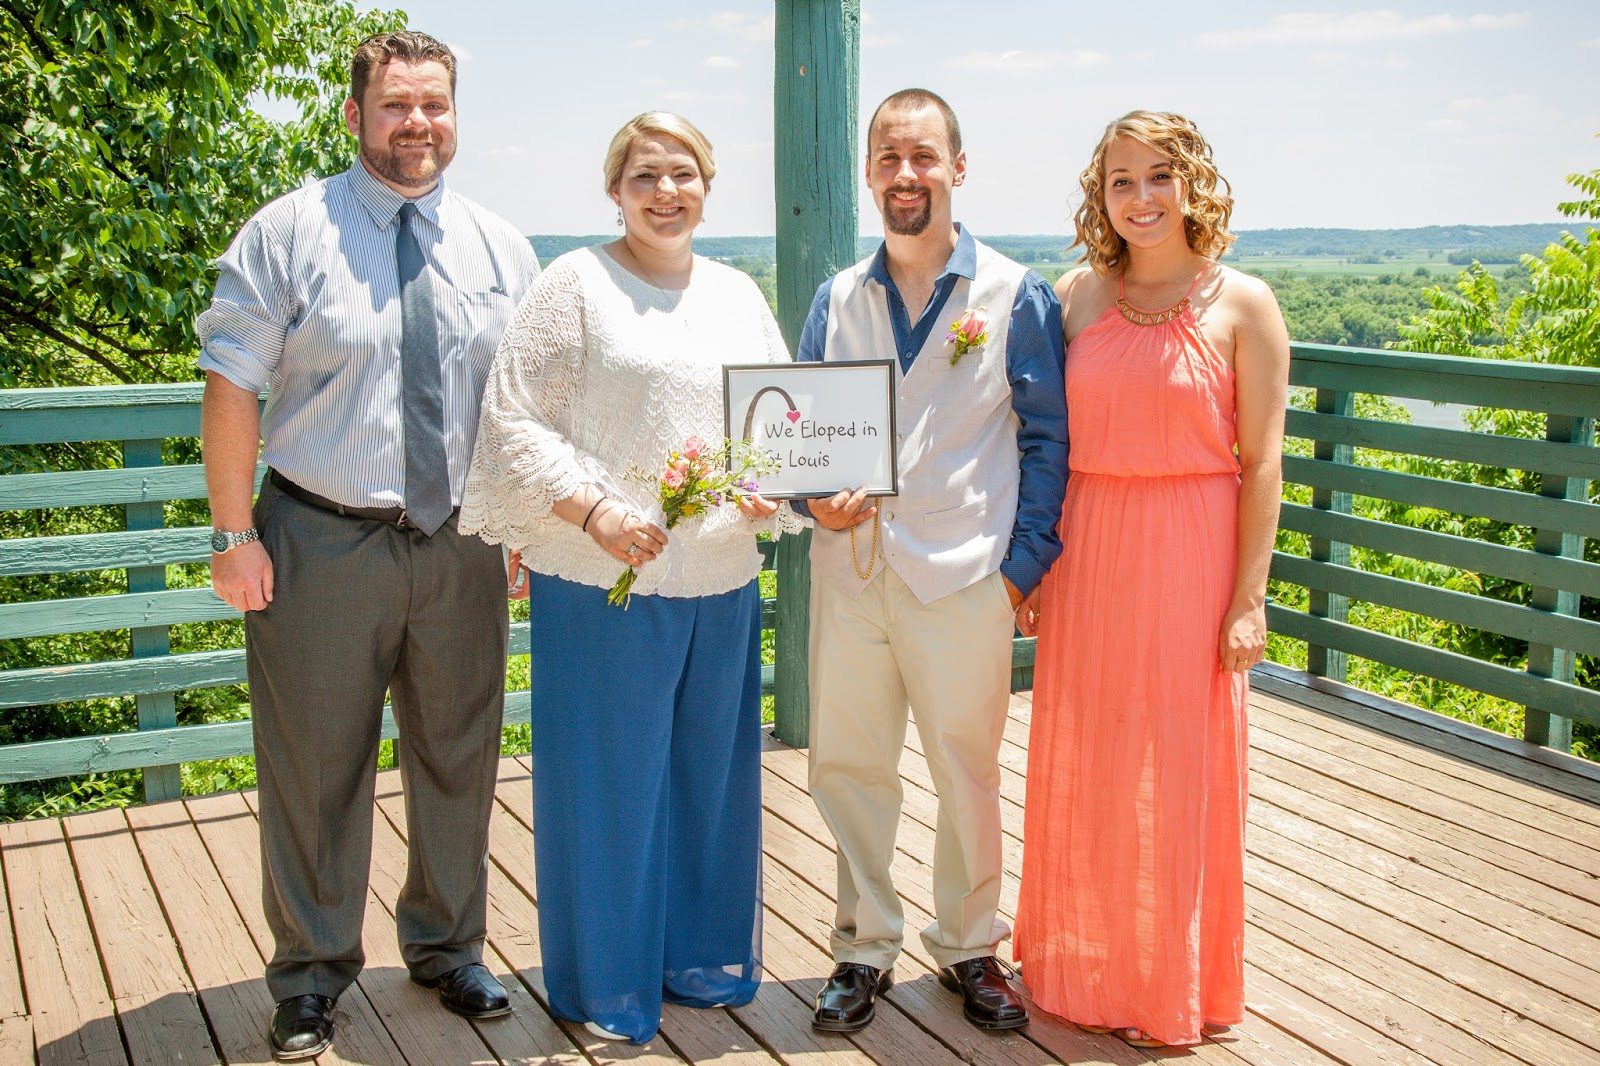 Elope in St Louis: Elope at Bee Tree Park